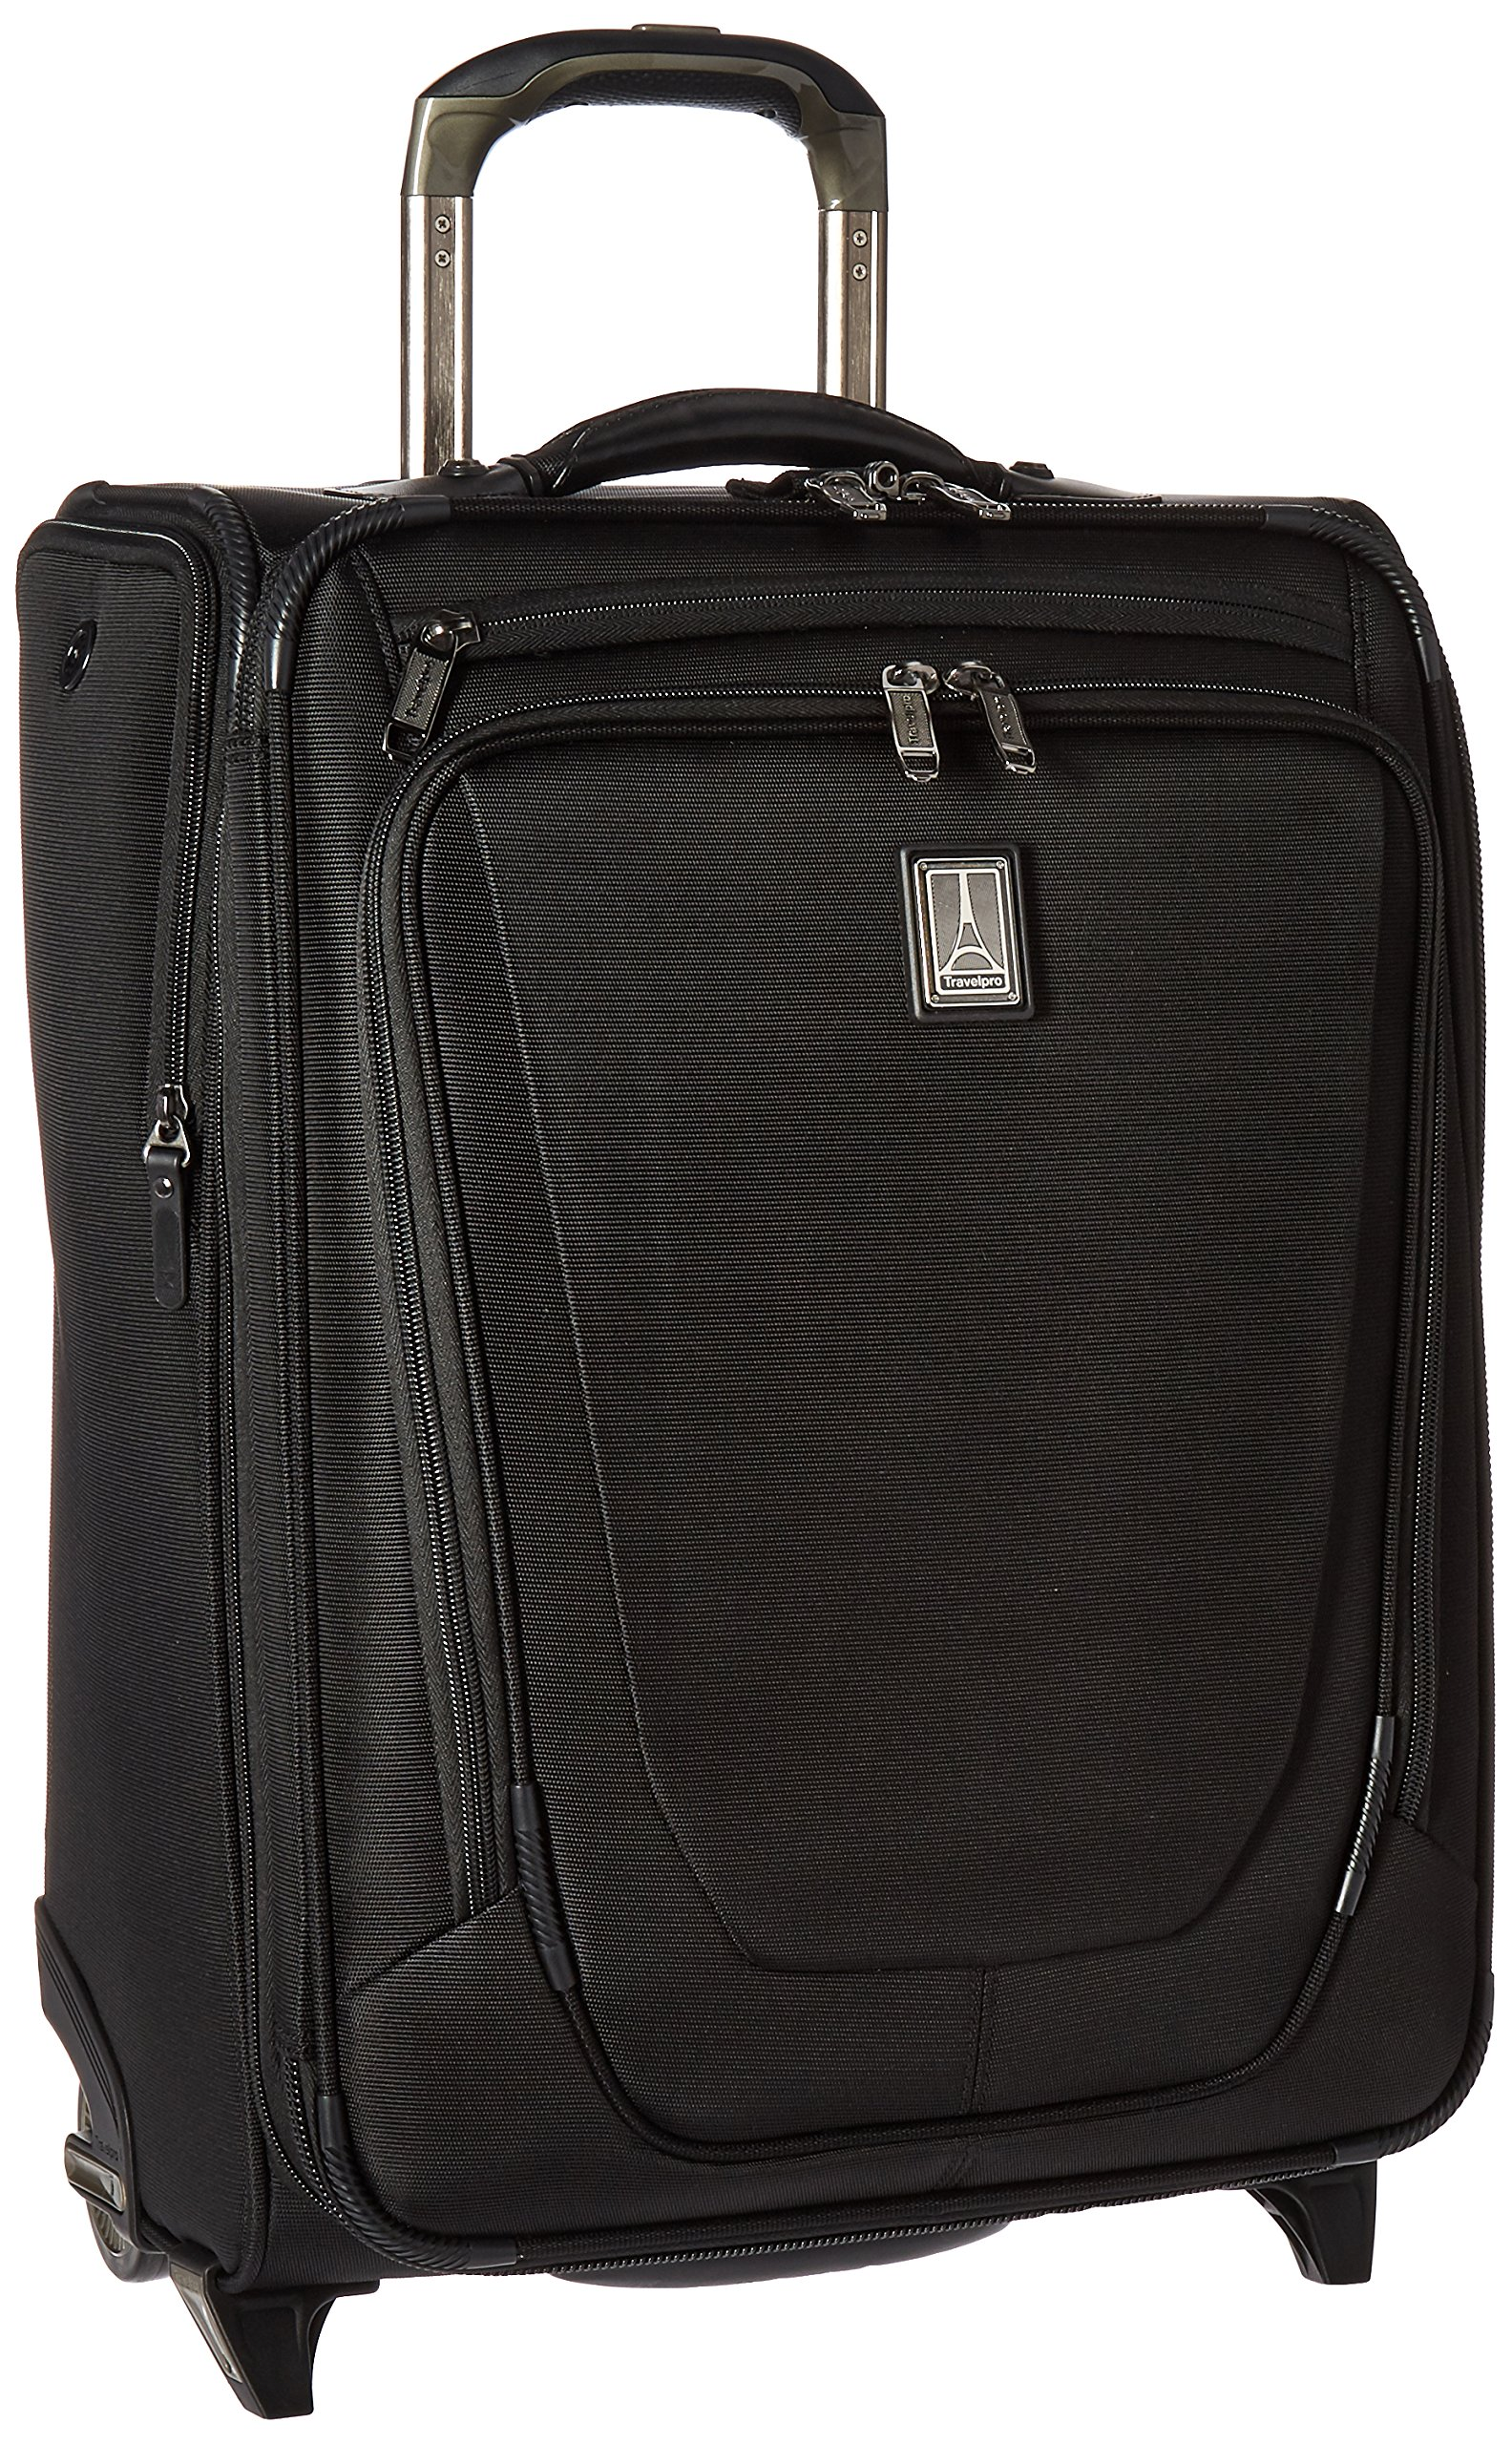 Travelpro Crew 11 20'' Expandable Business Plus Rollaboard Carry-on Suitcase, Black